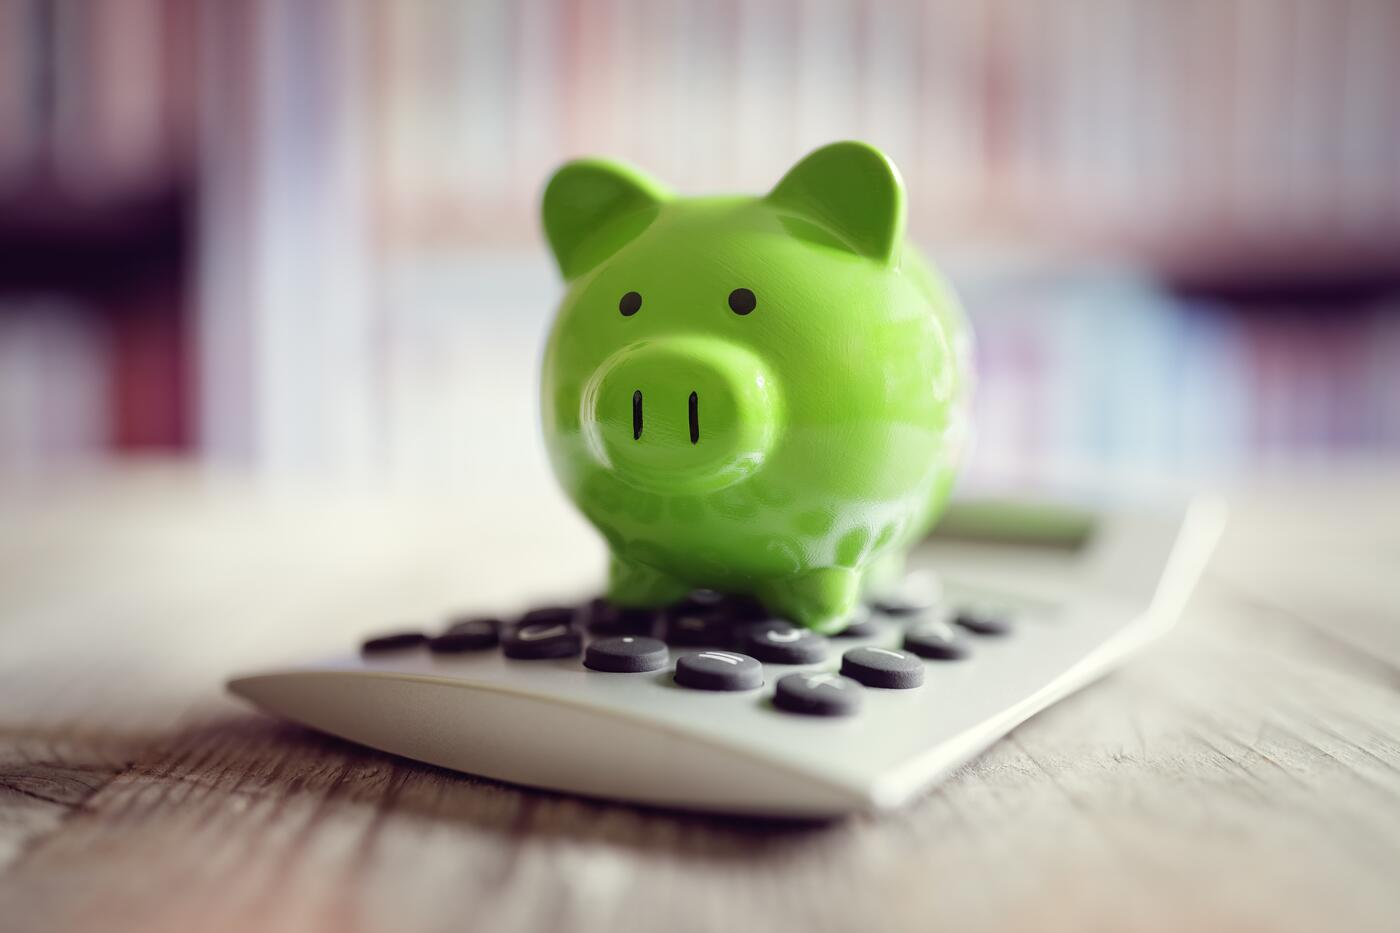 Is Debt Consolidation Right For You? Our Free Debt Calculator Has the Answer